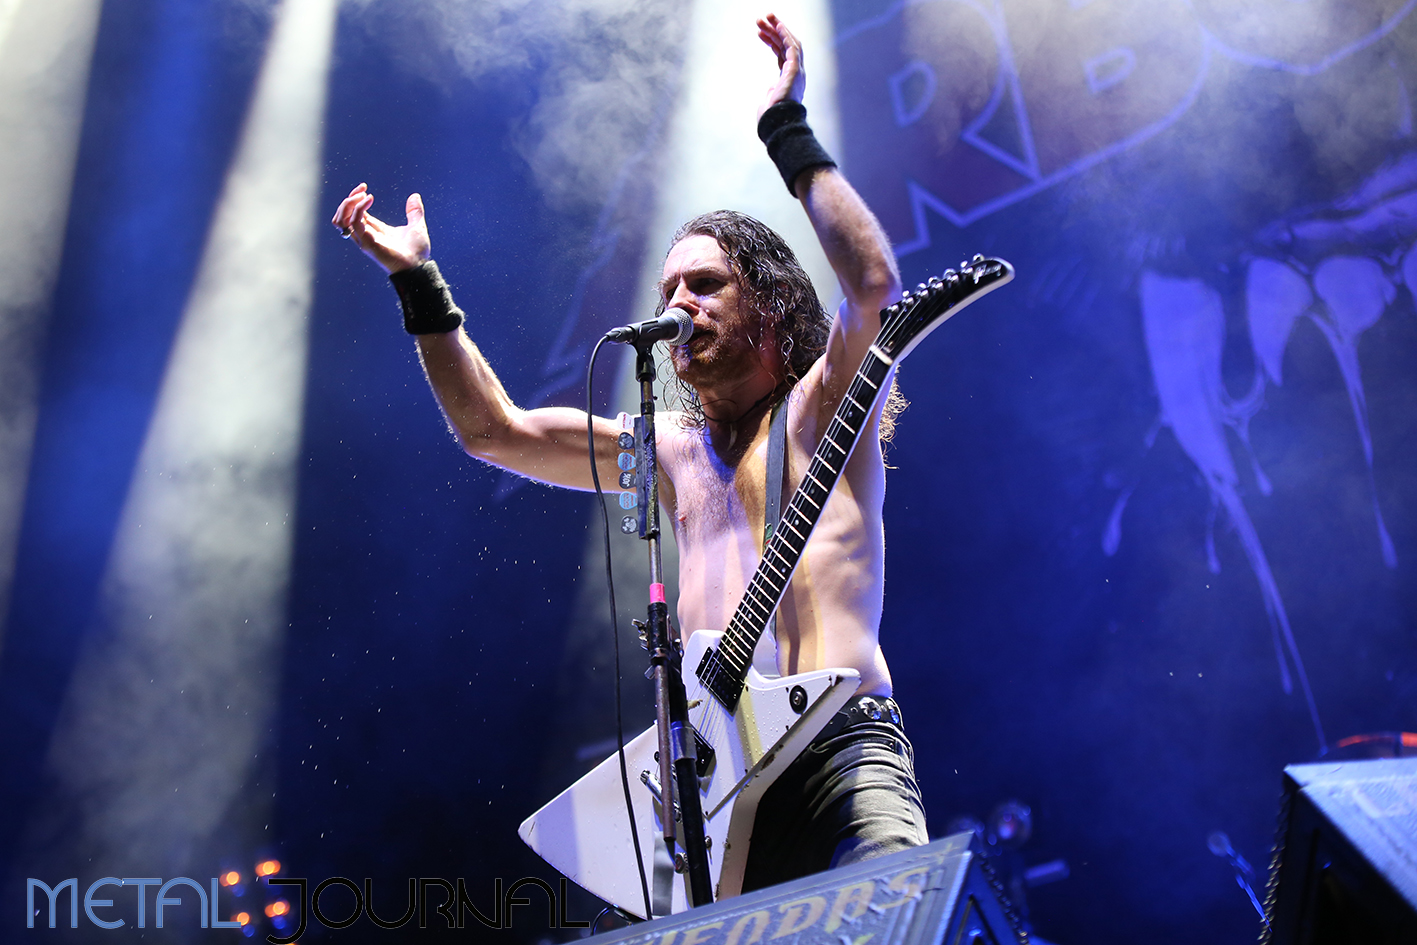 airbourne - leyendas del rock 2019 metal journal pic 14